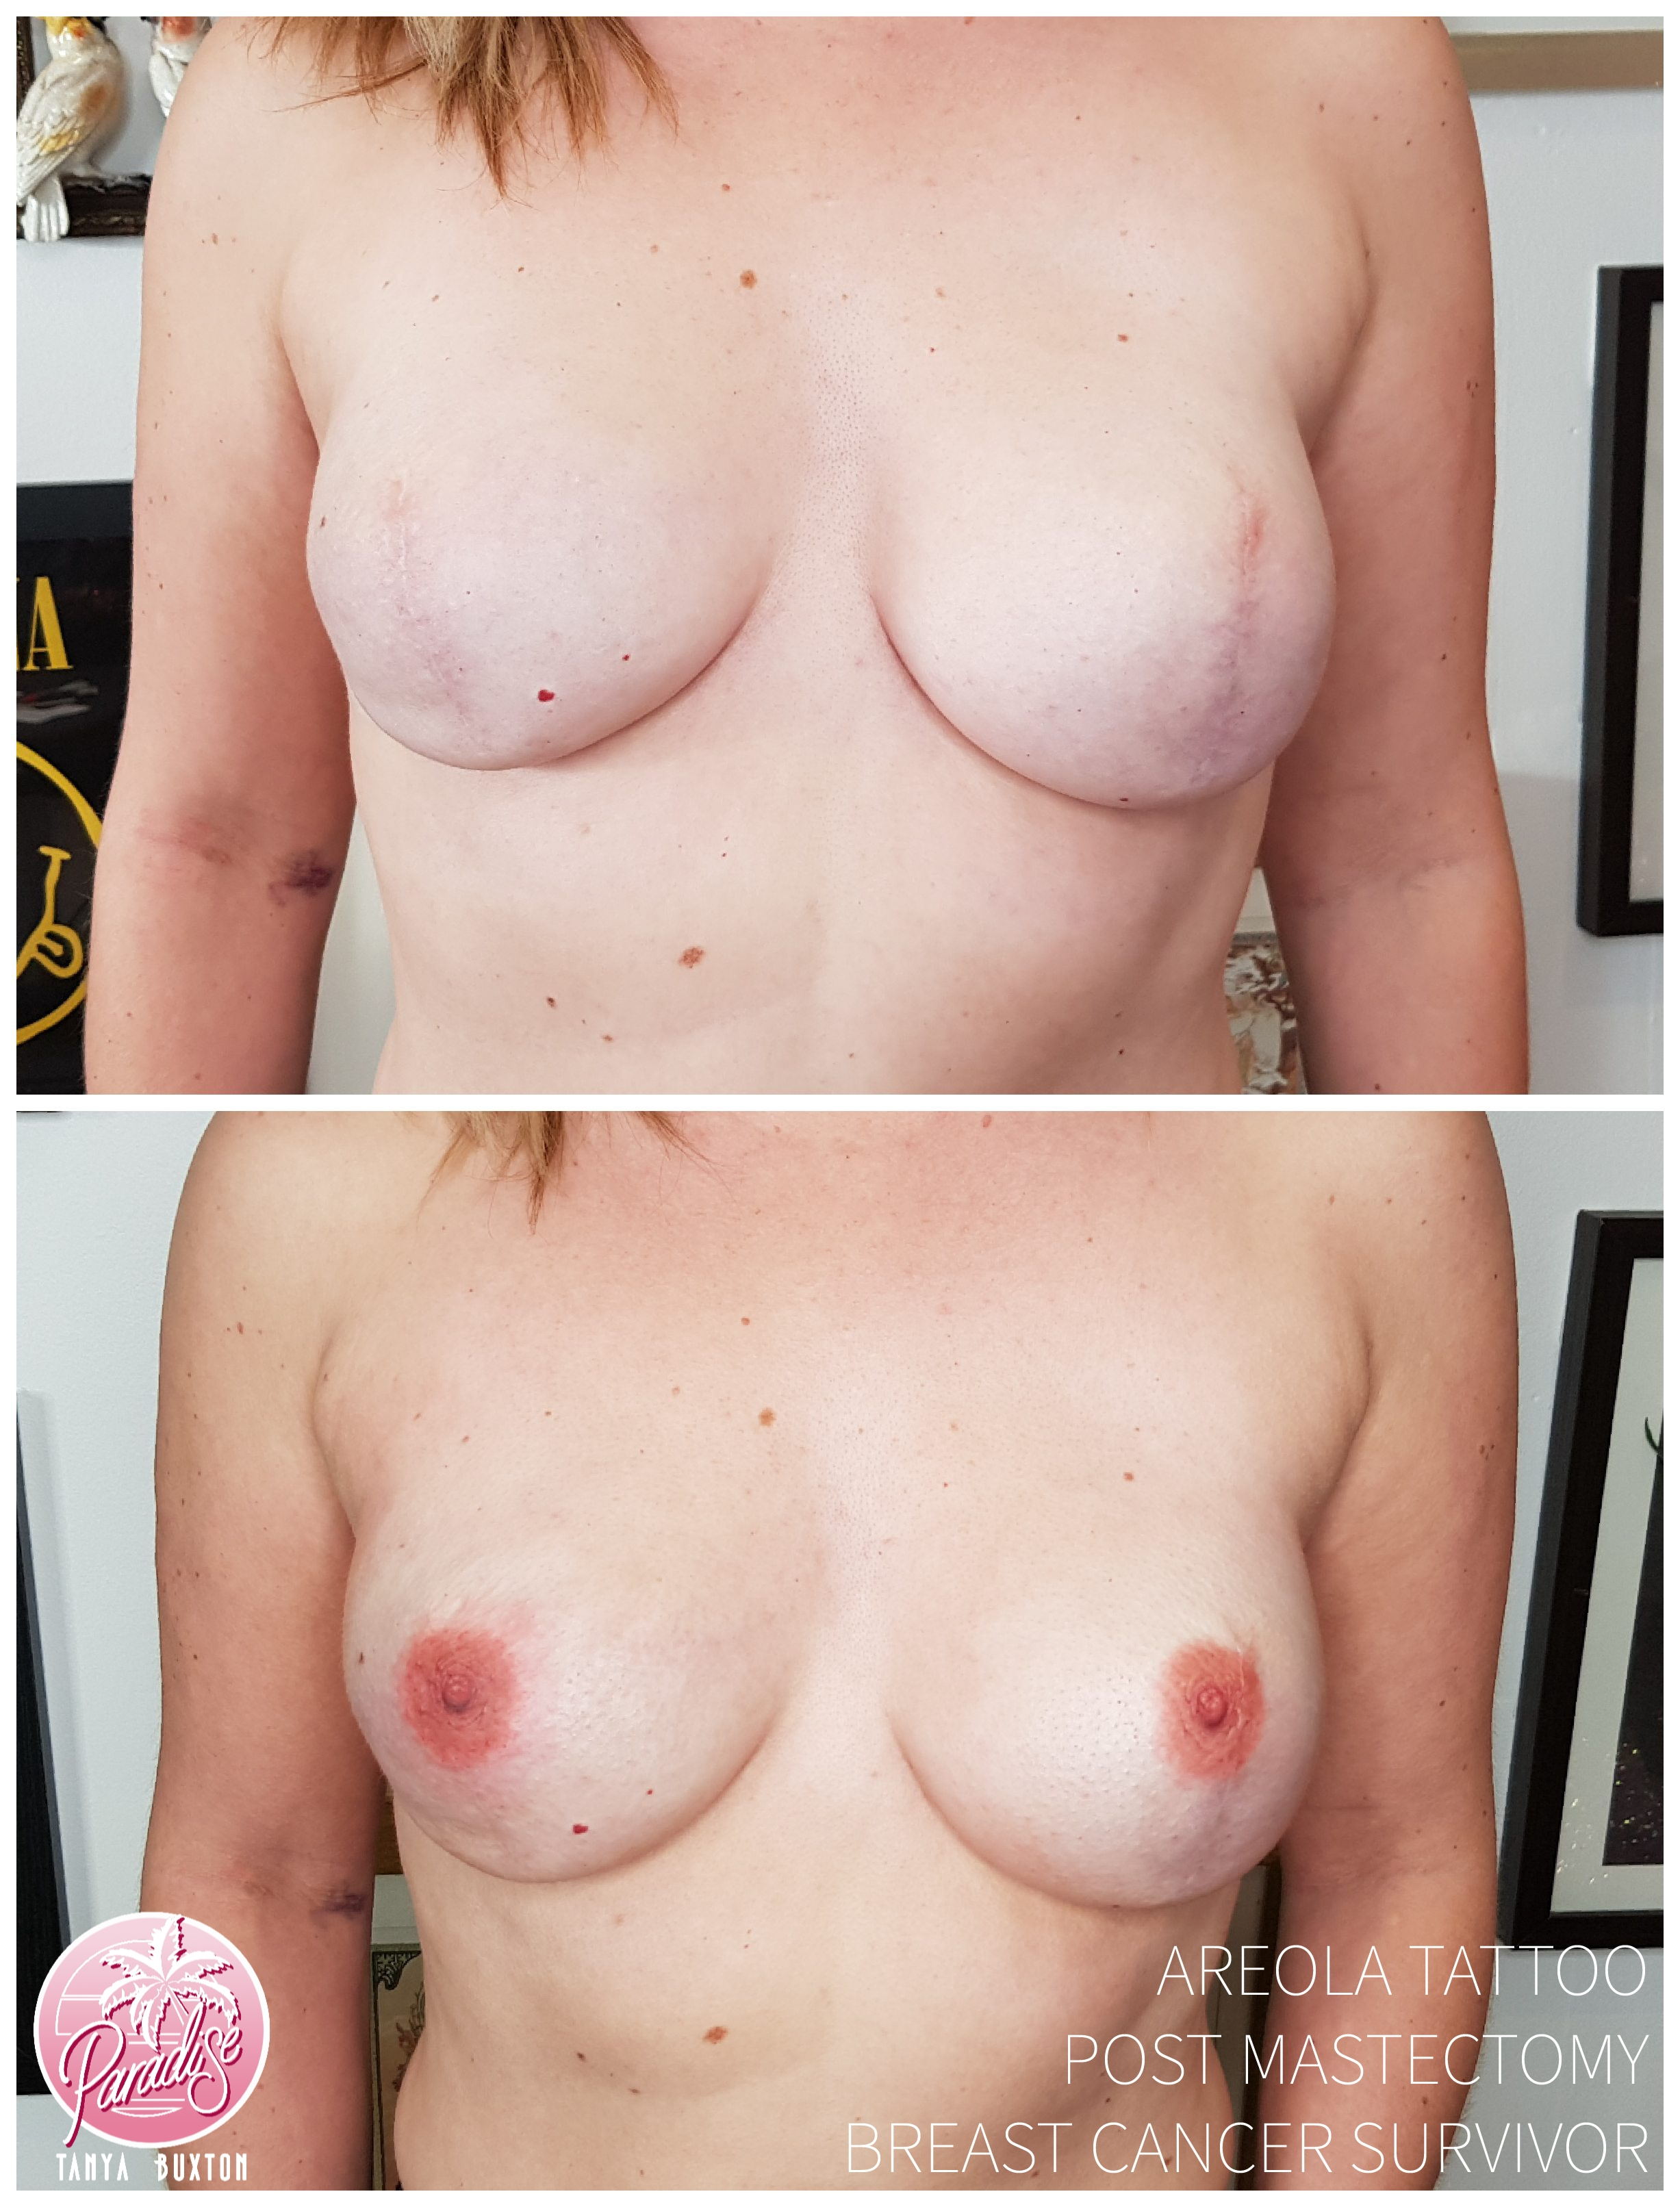 3D Realistic Areola Tattoo, post preventative mastectomy